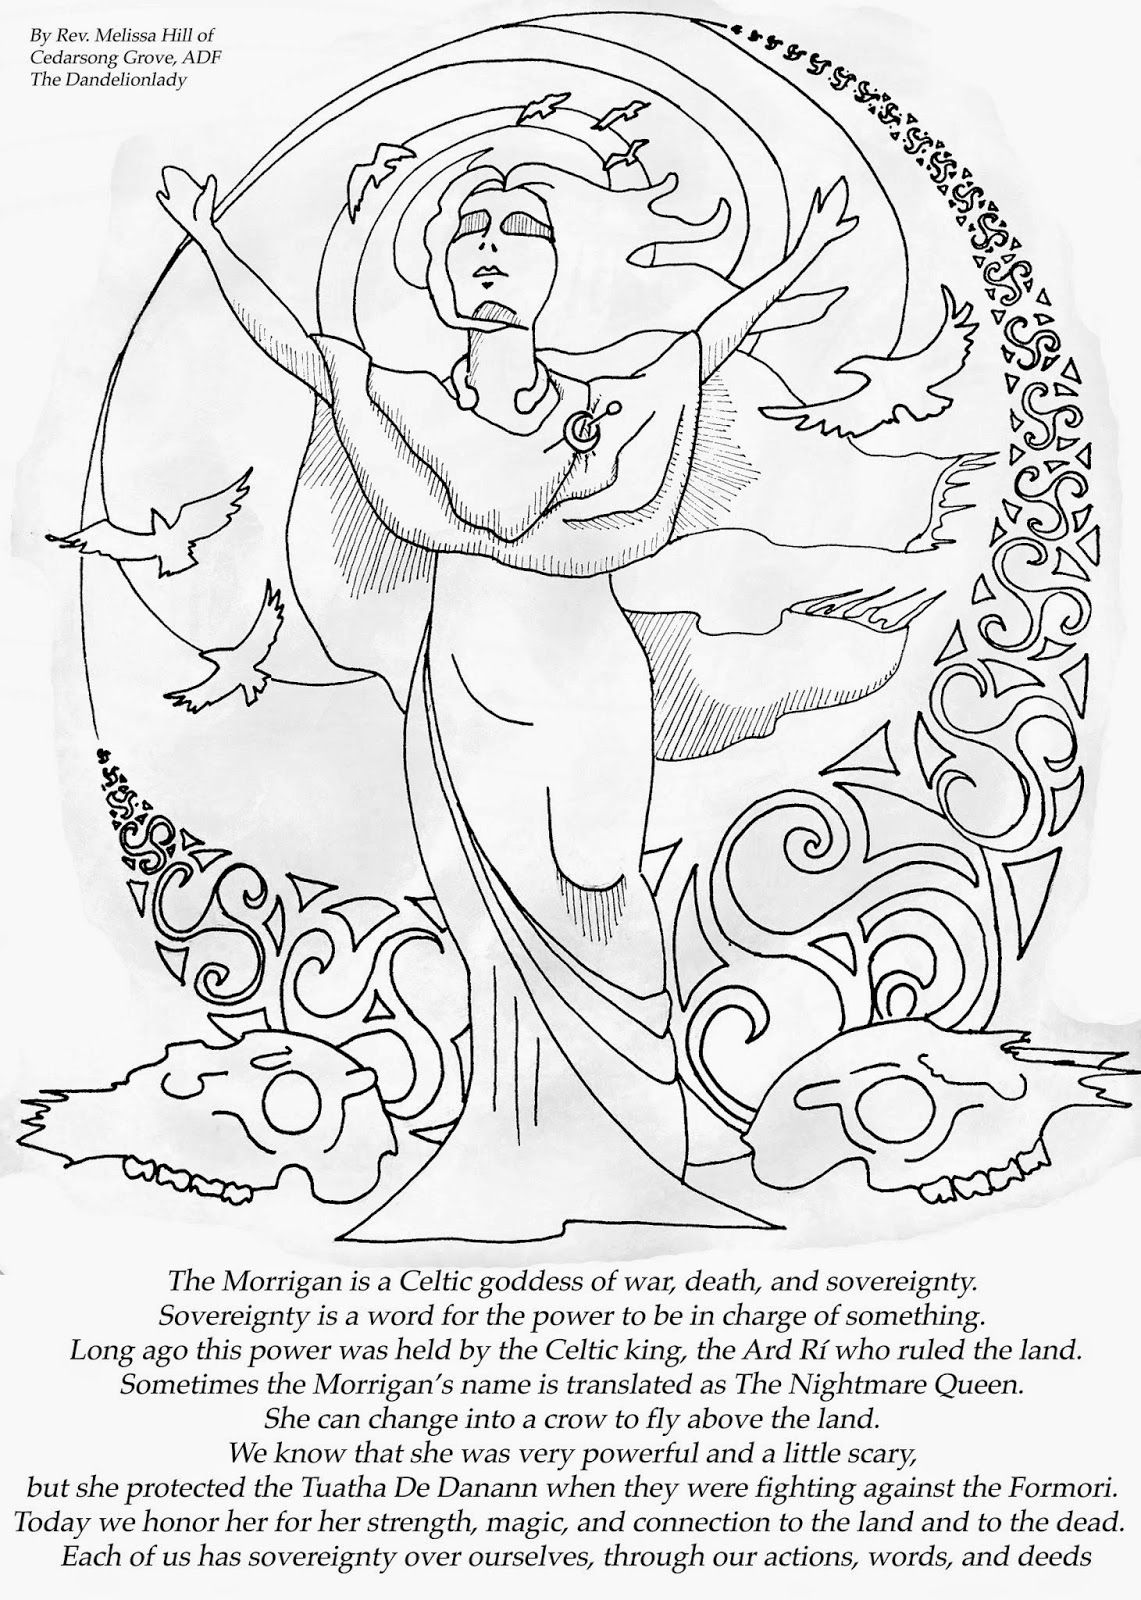 Samhain Coloring Page For The Morrigan